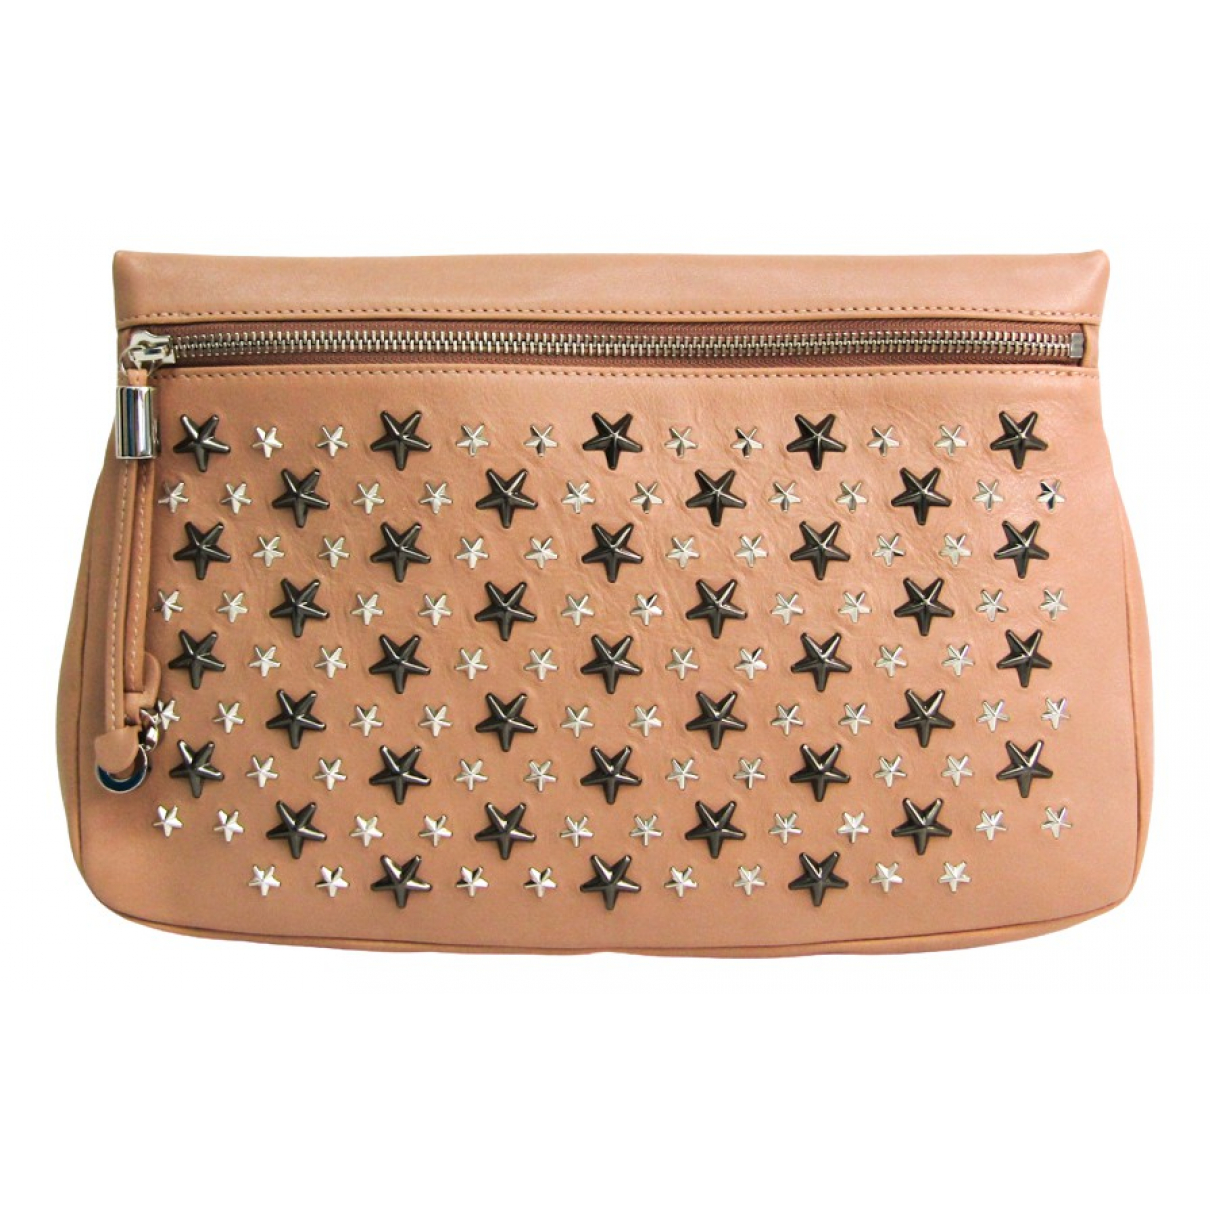 Jimmy Choo \N Pink Leather Clutch bag for Women \N